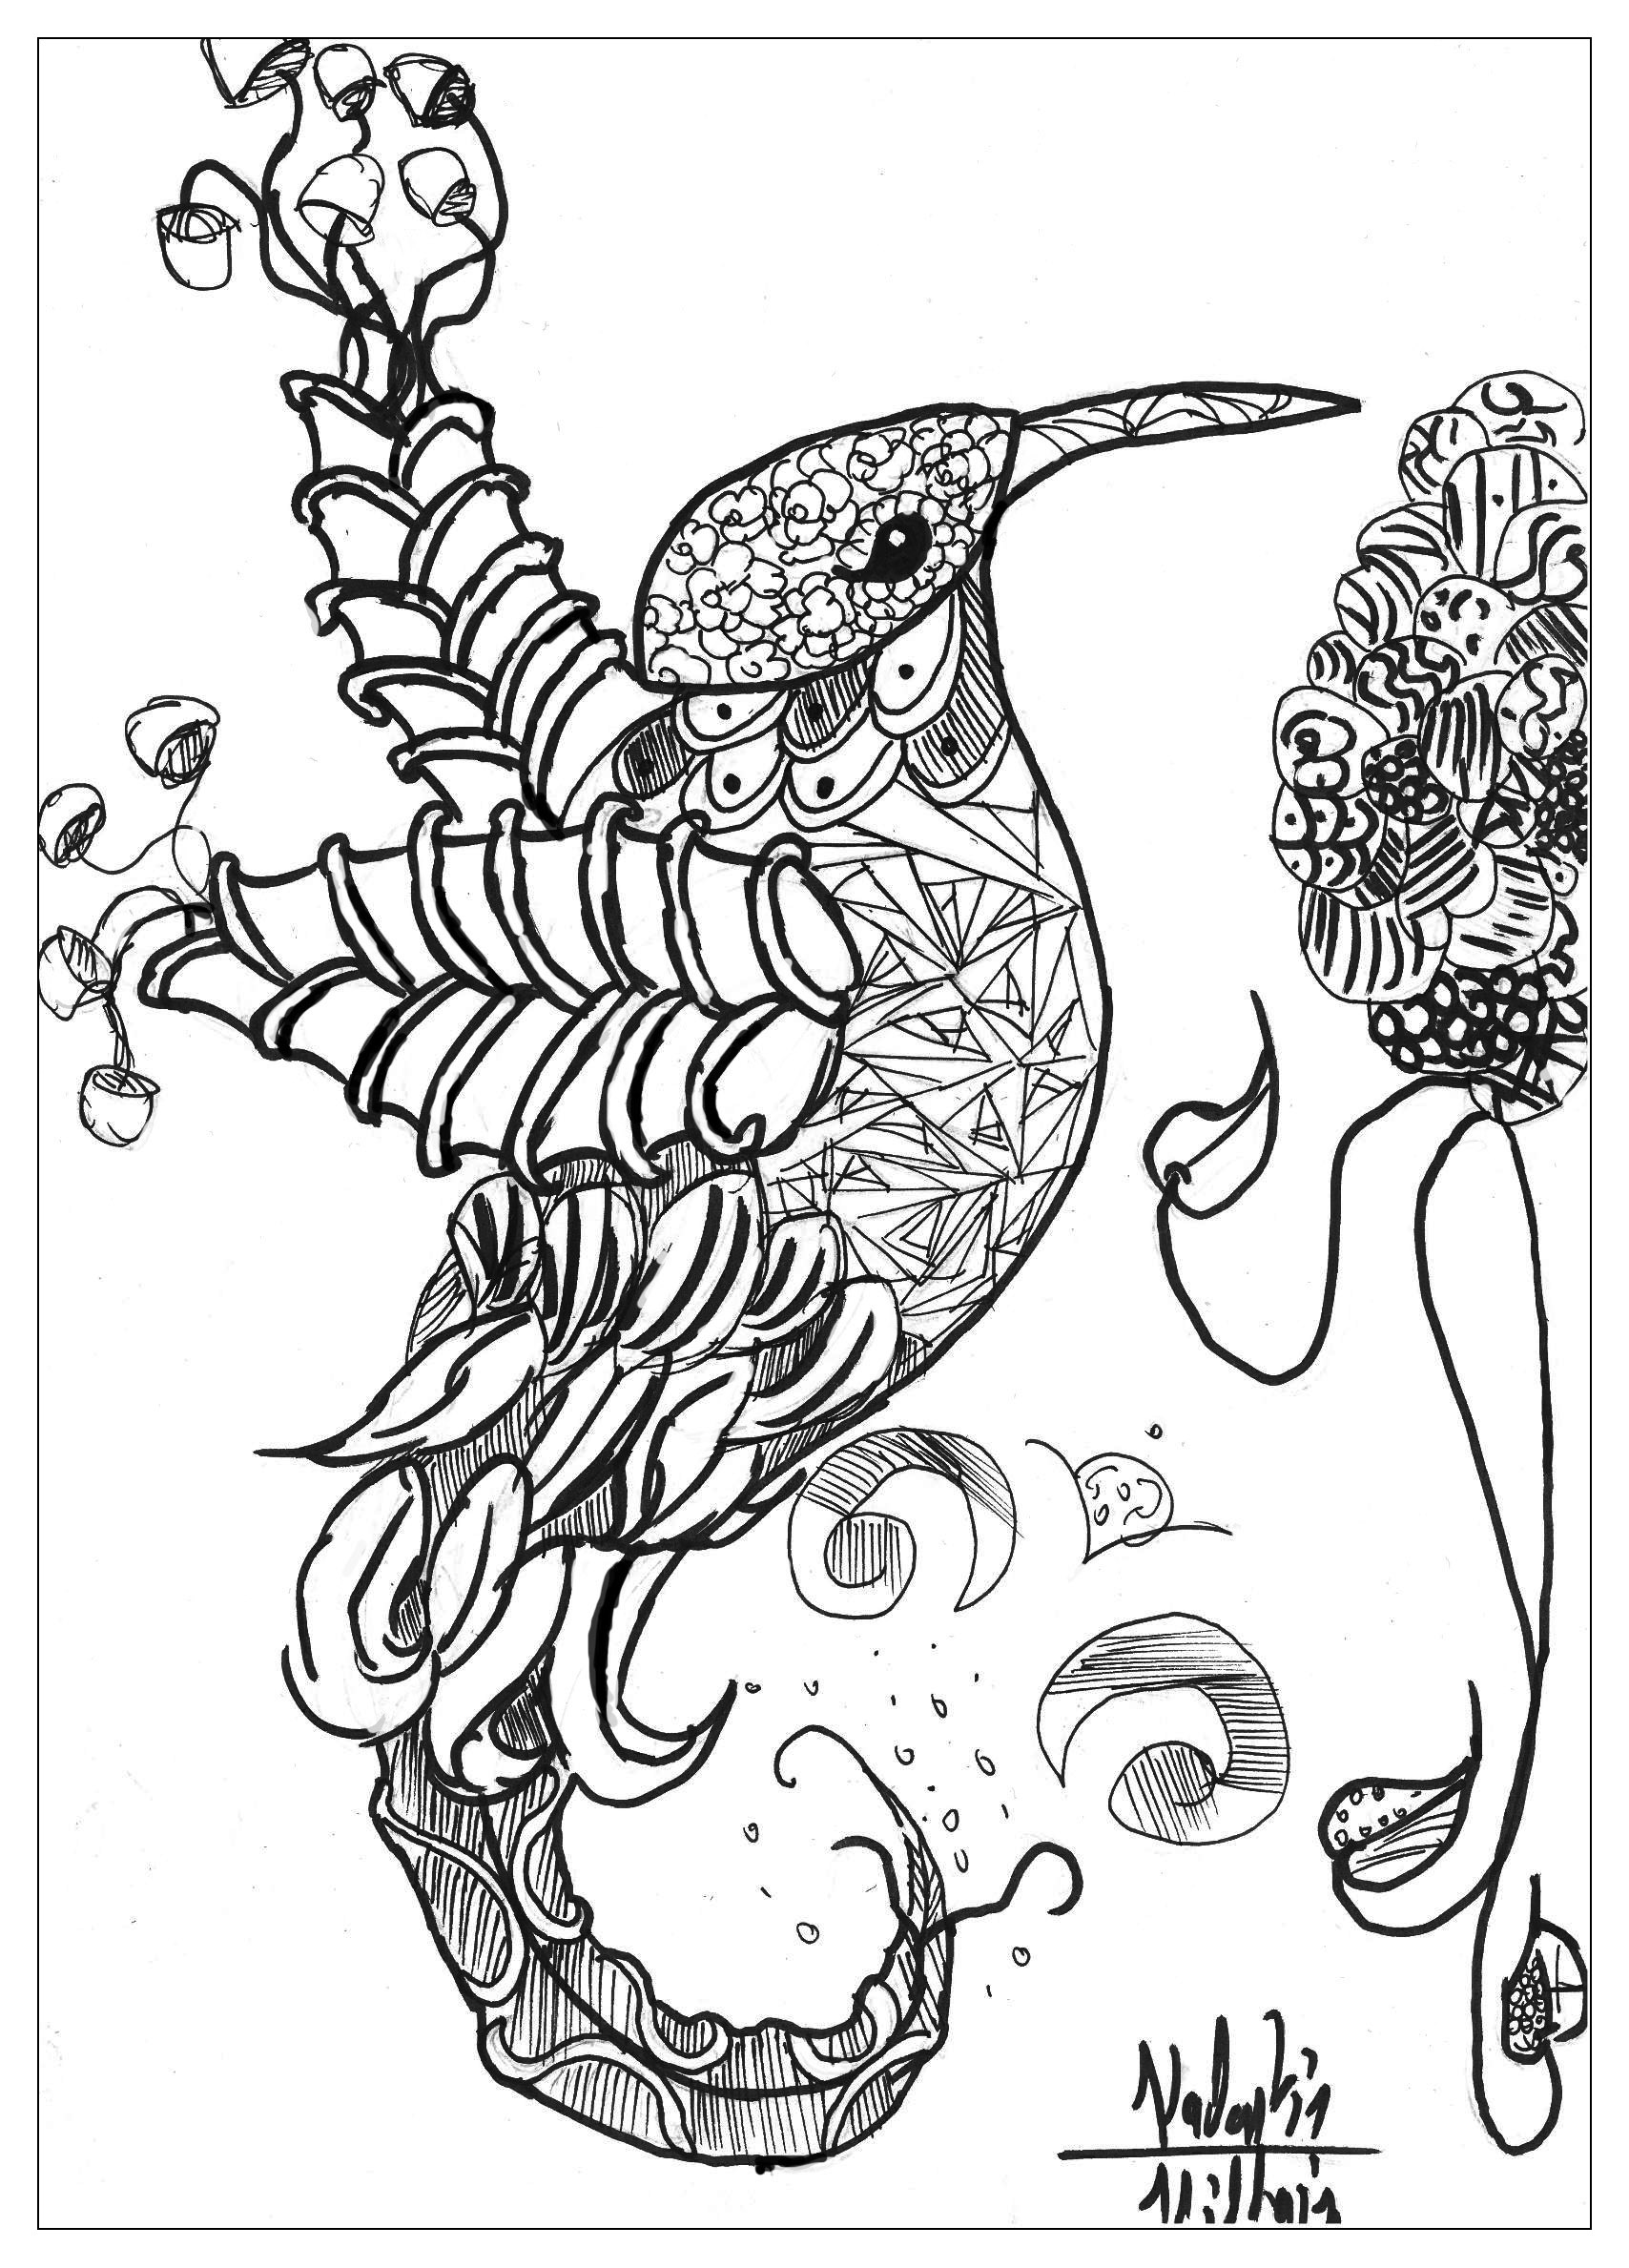 Coloring Pages Coloring Pages Of Animals For Adults animals coloring pages for adults page bird valentinfrom the gallery animalsartist valentin